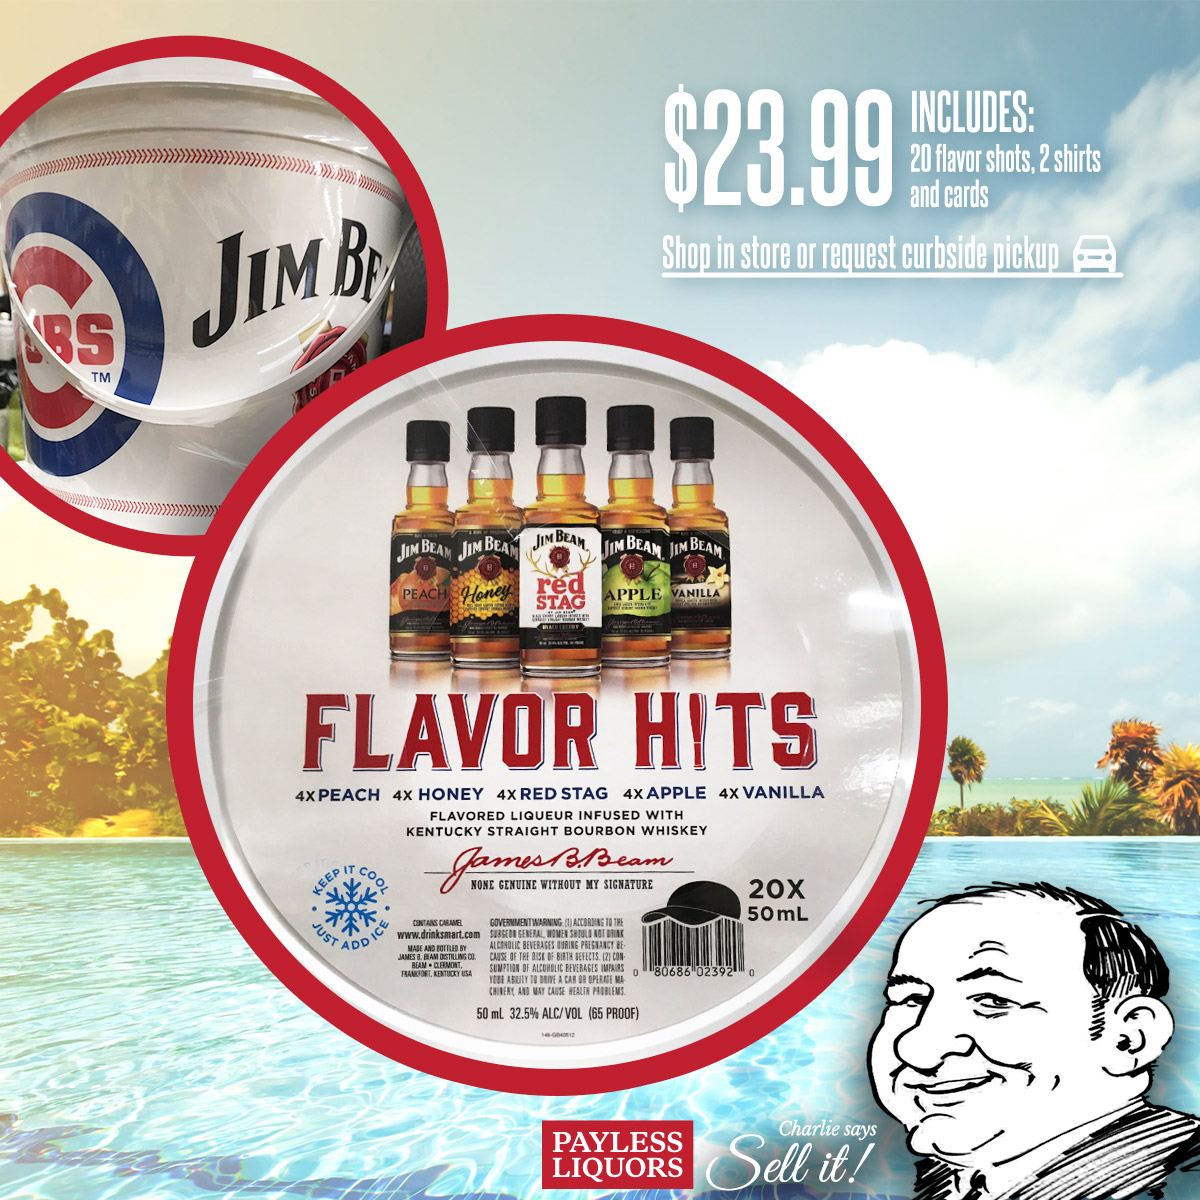 Jim Beam Flavor Shooters Buckets - Includes 2 shirts and cards